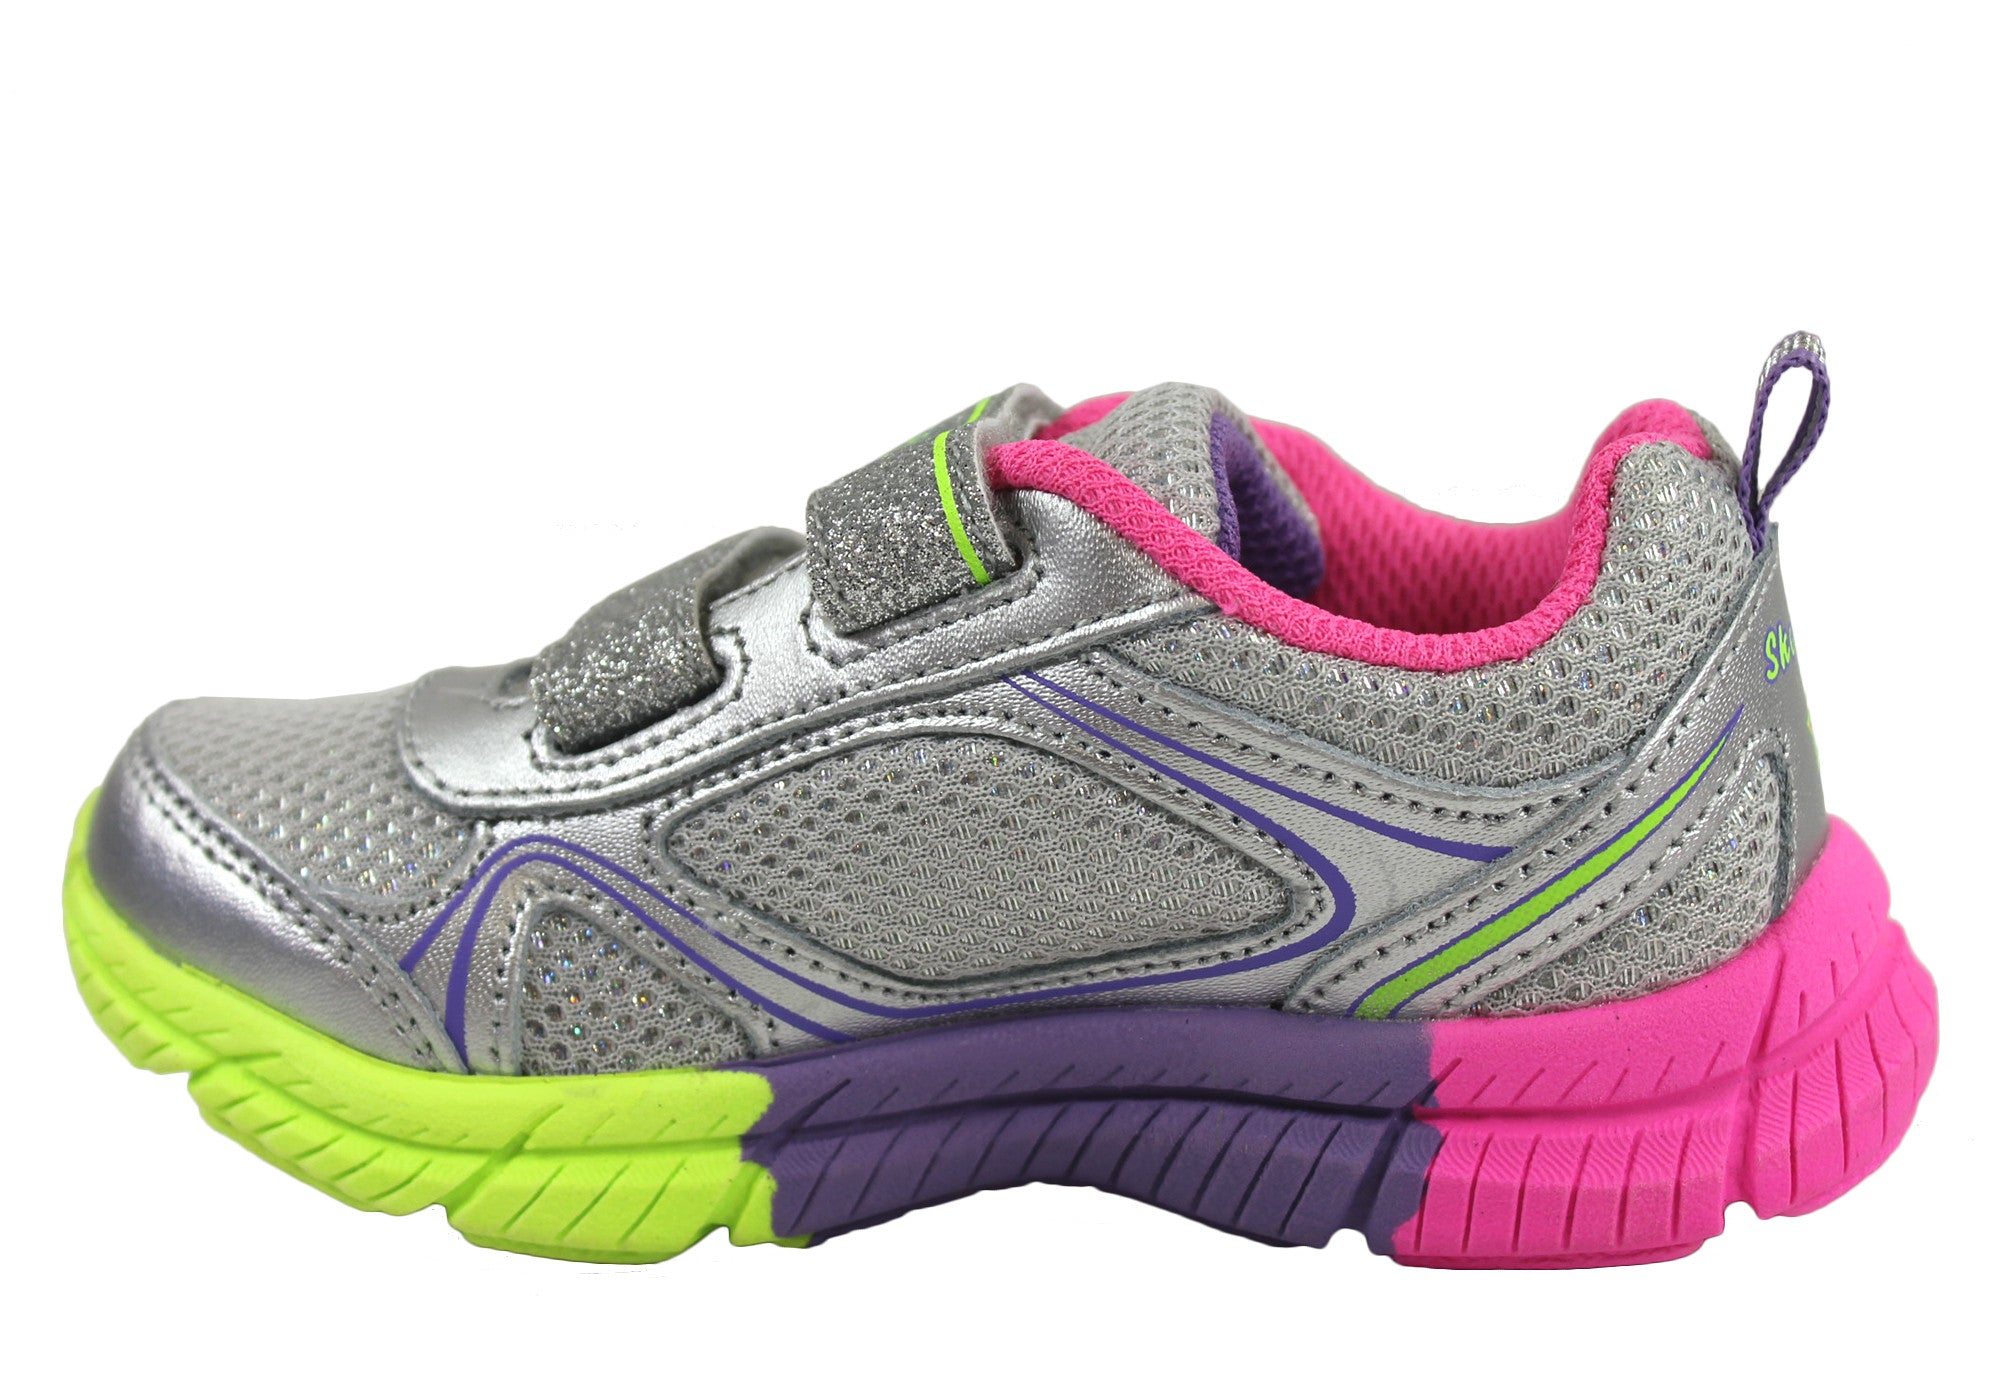 Skechers Swivels Double Glitter Toddlers Girls Shoes